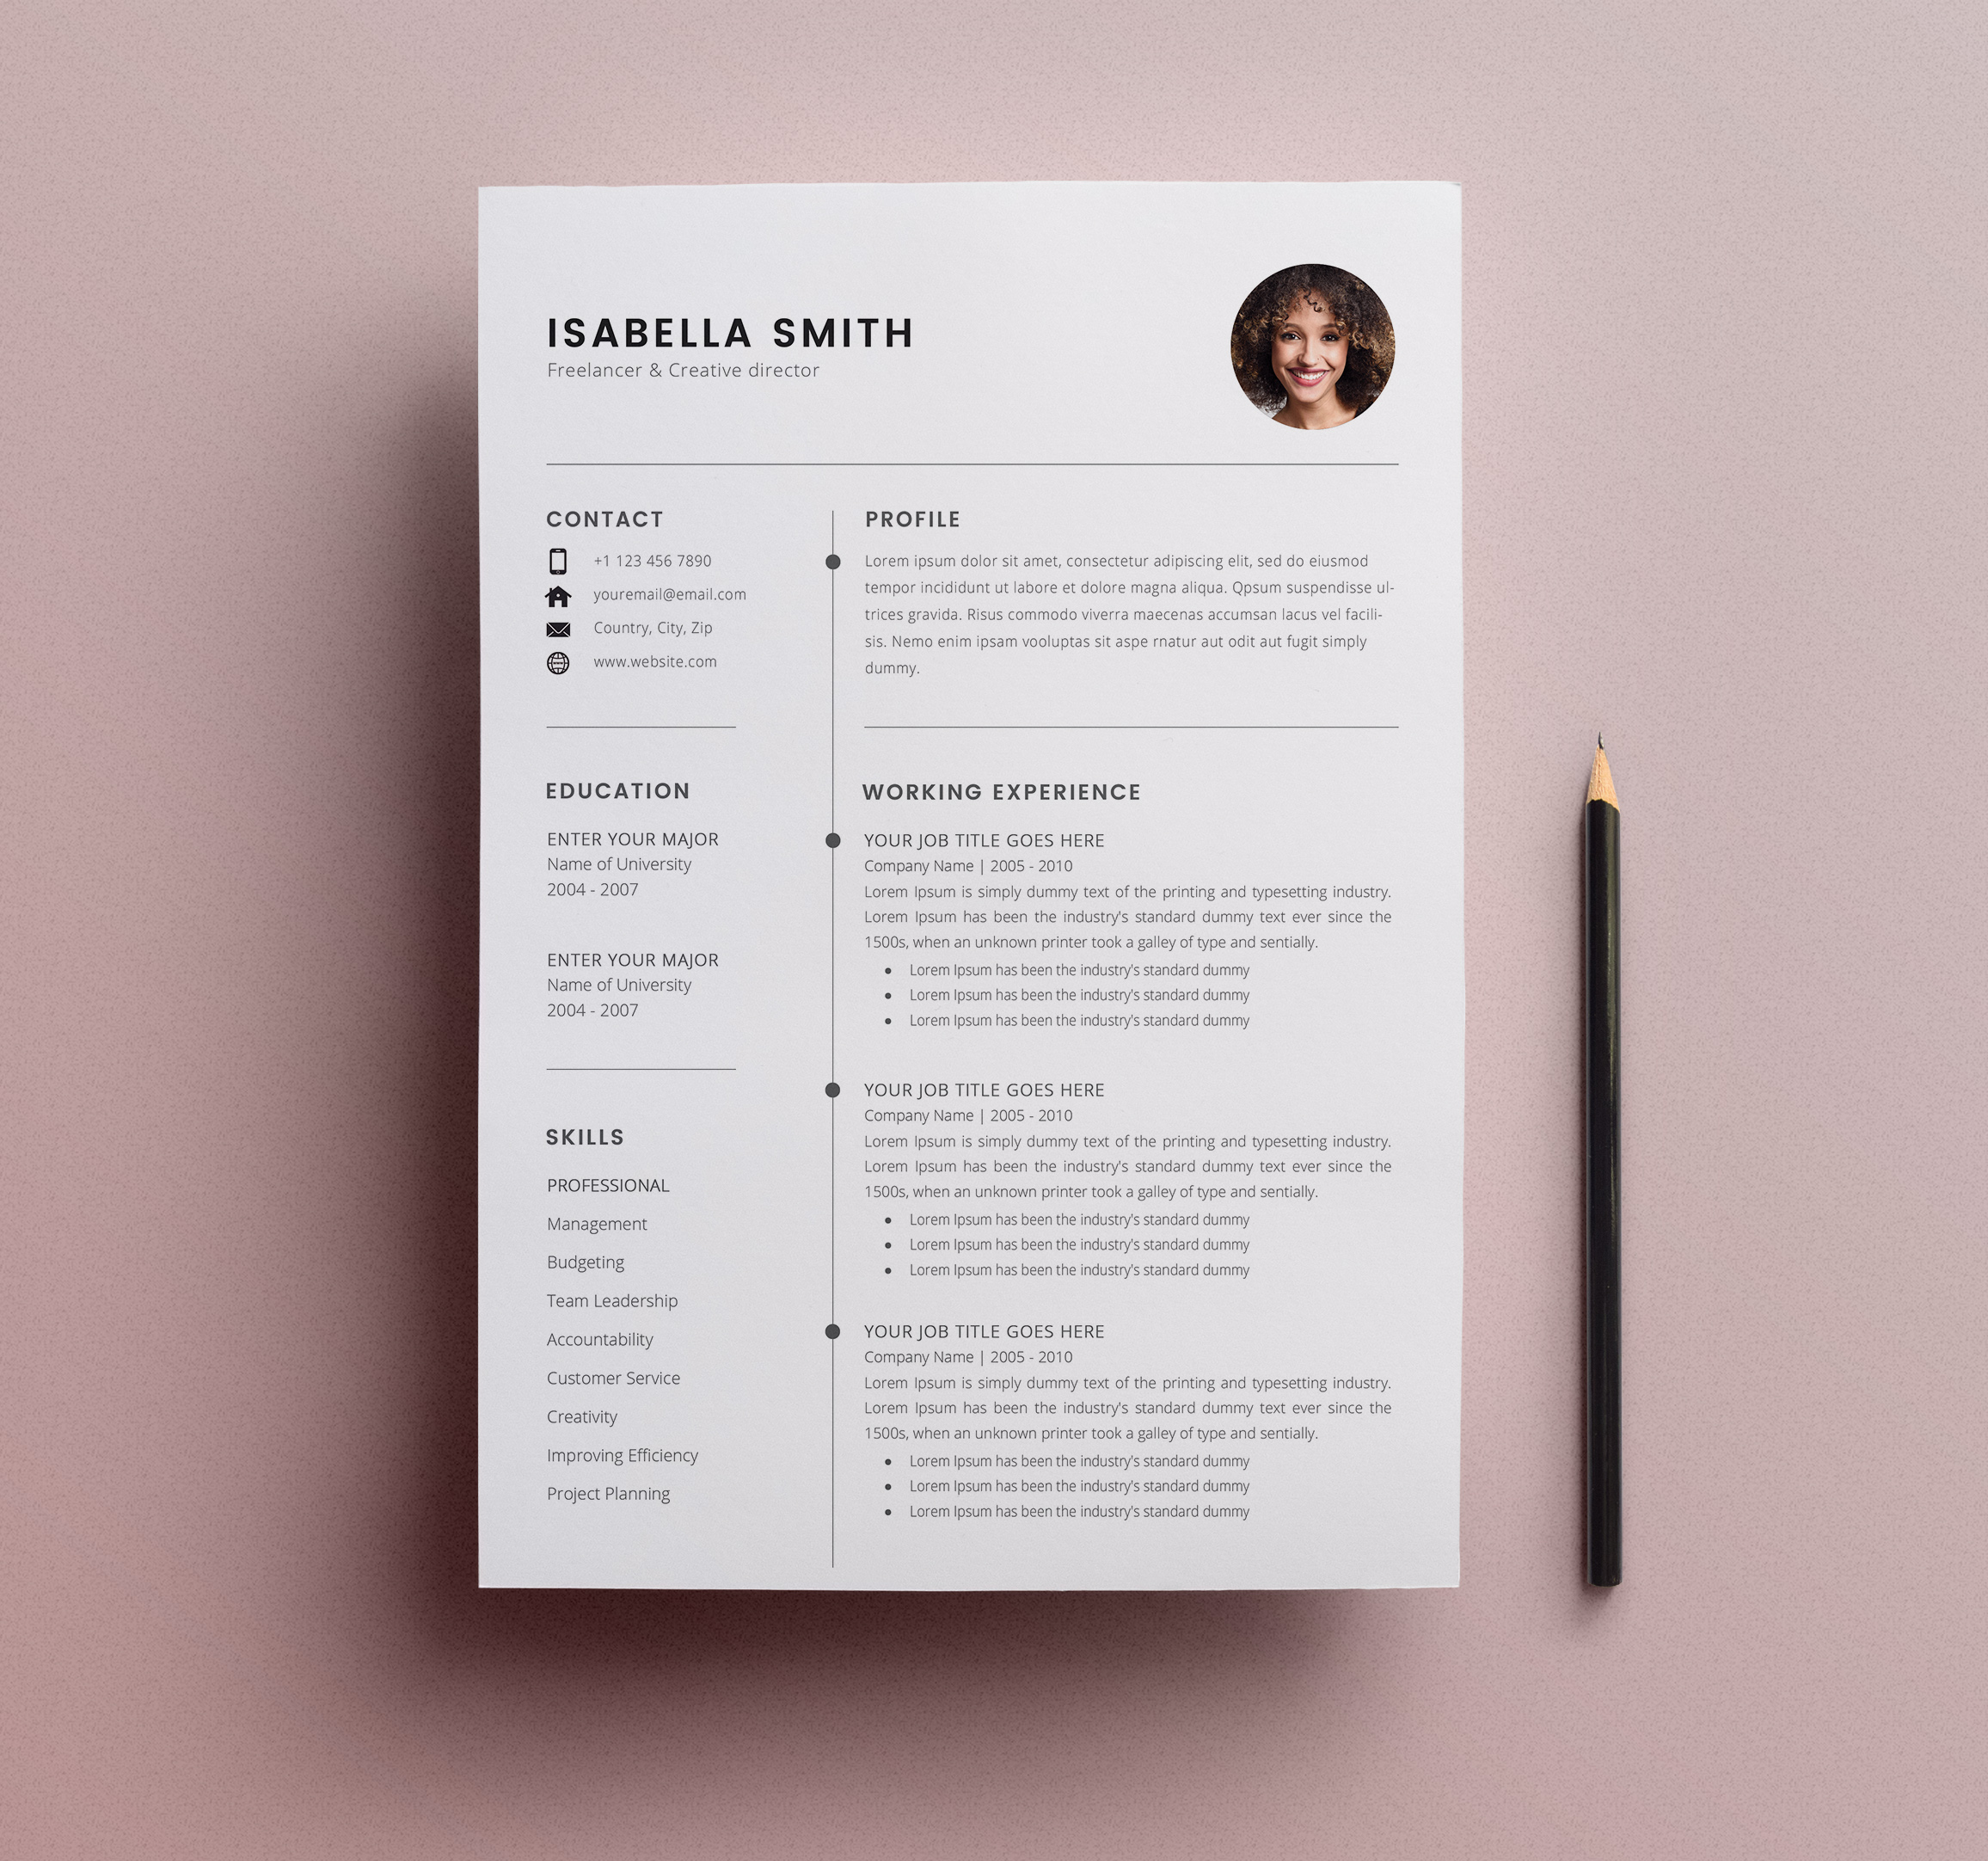 free resume template cv freebies graphic design junctiongraphic junction view1 windows Resume Resume Template 2020 Free Download